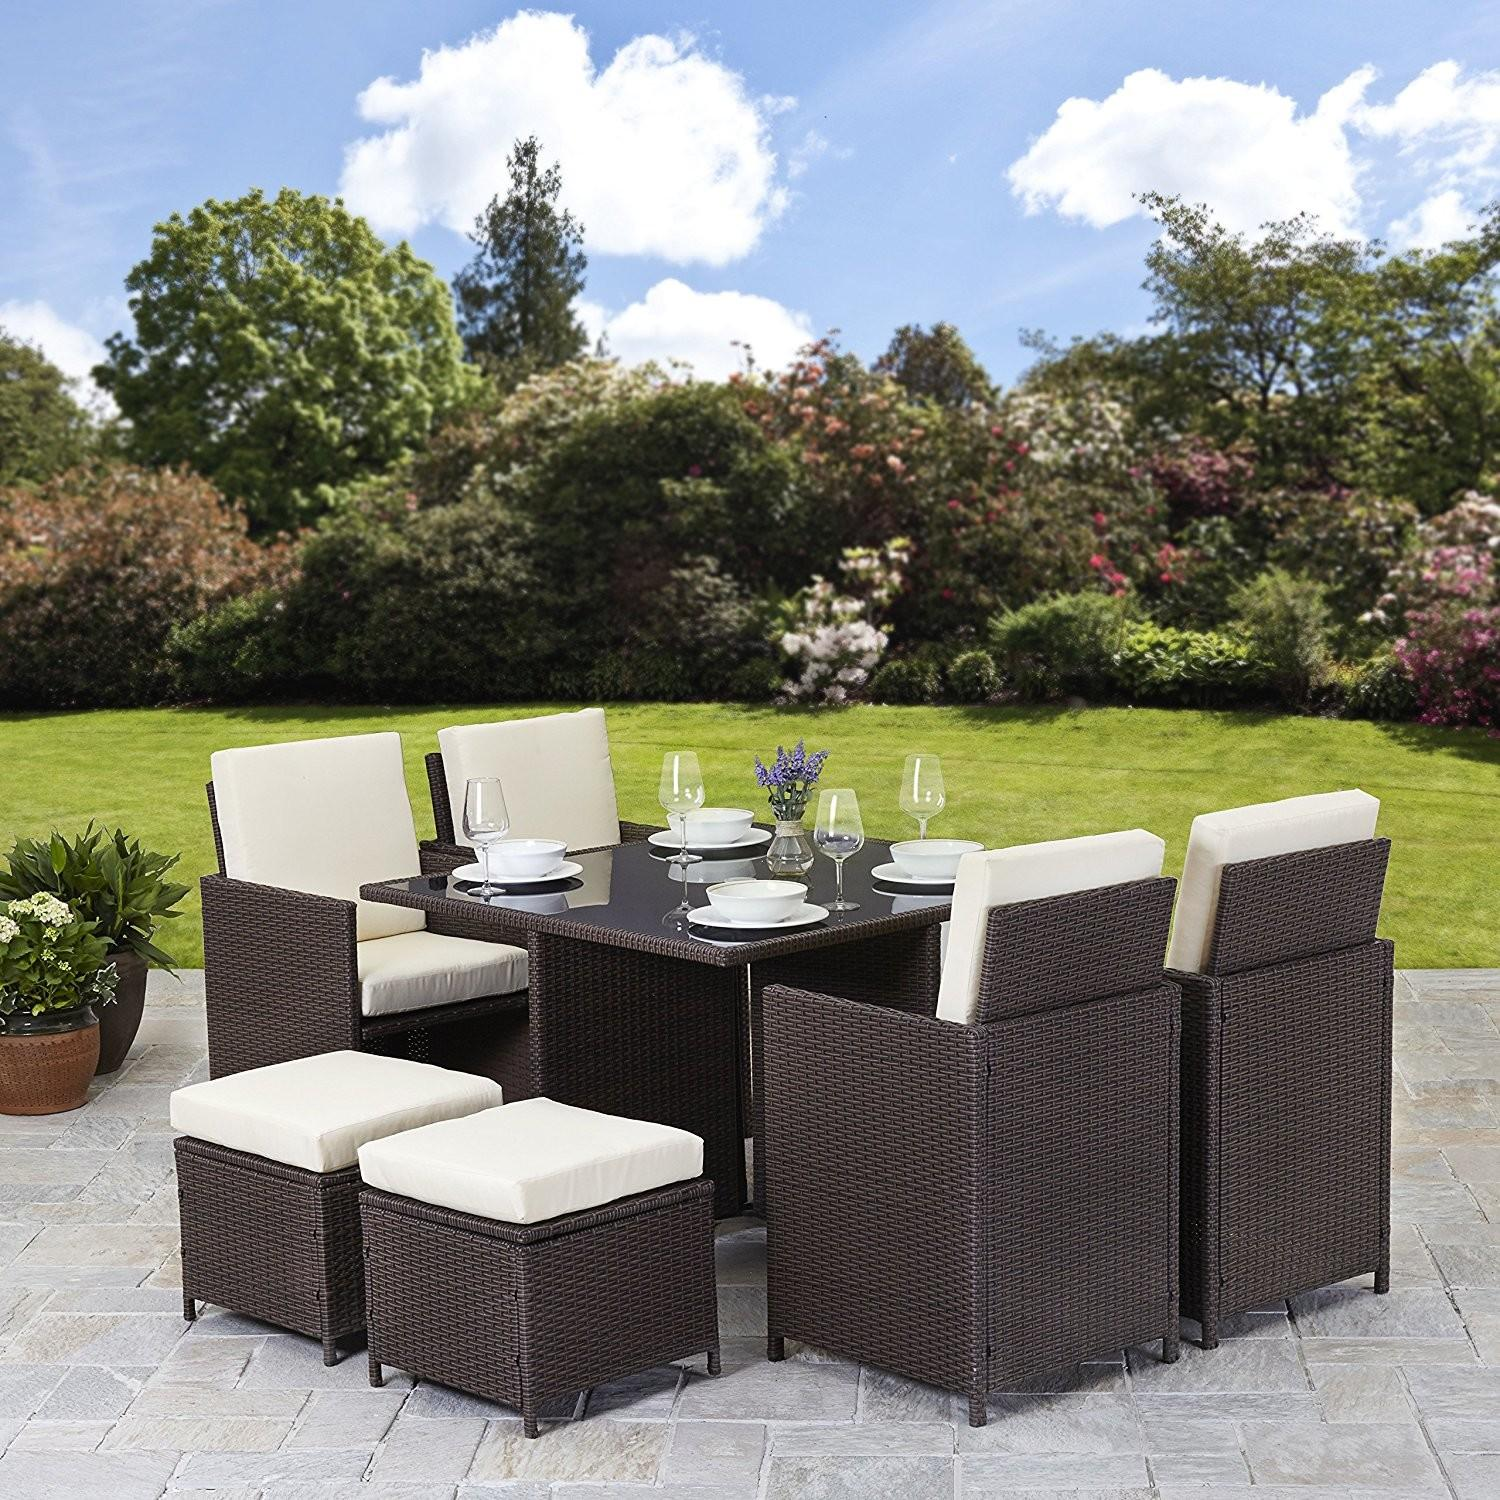 Classy Rattan Dining Set Black Wicker Material Also